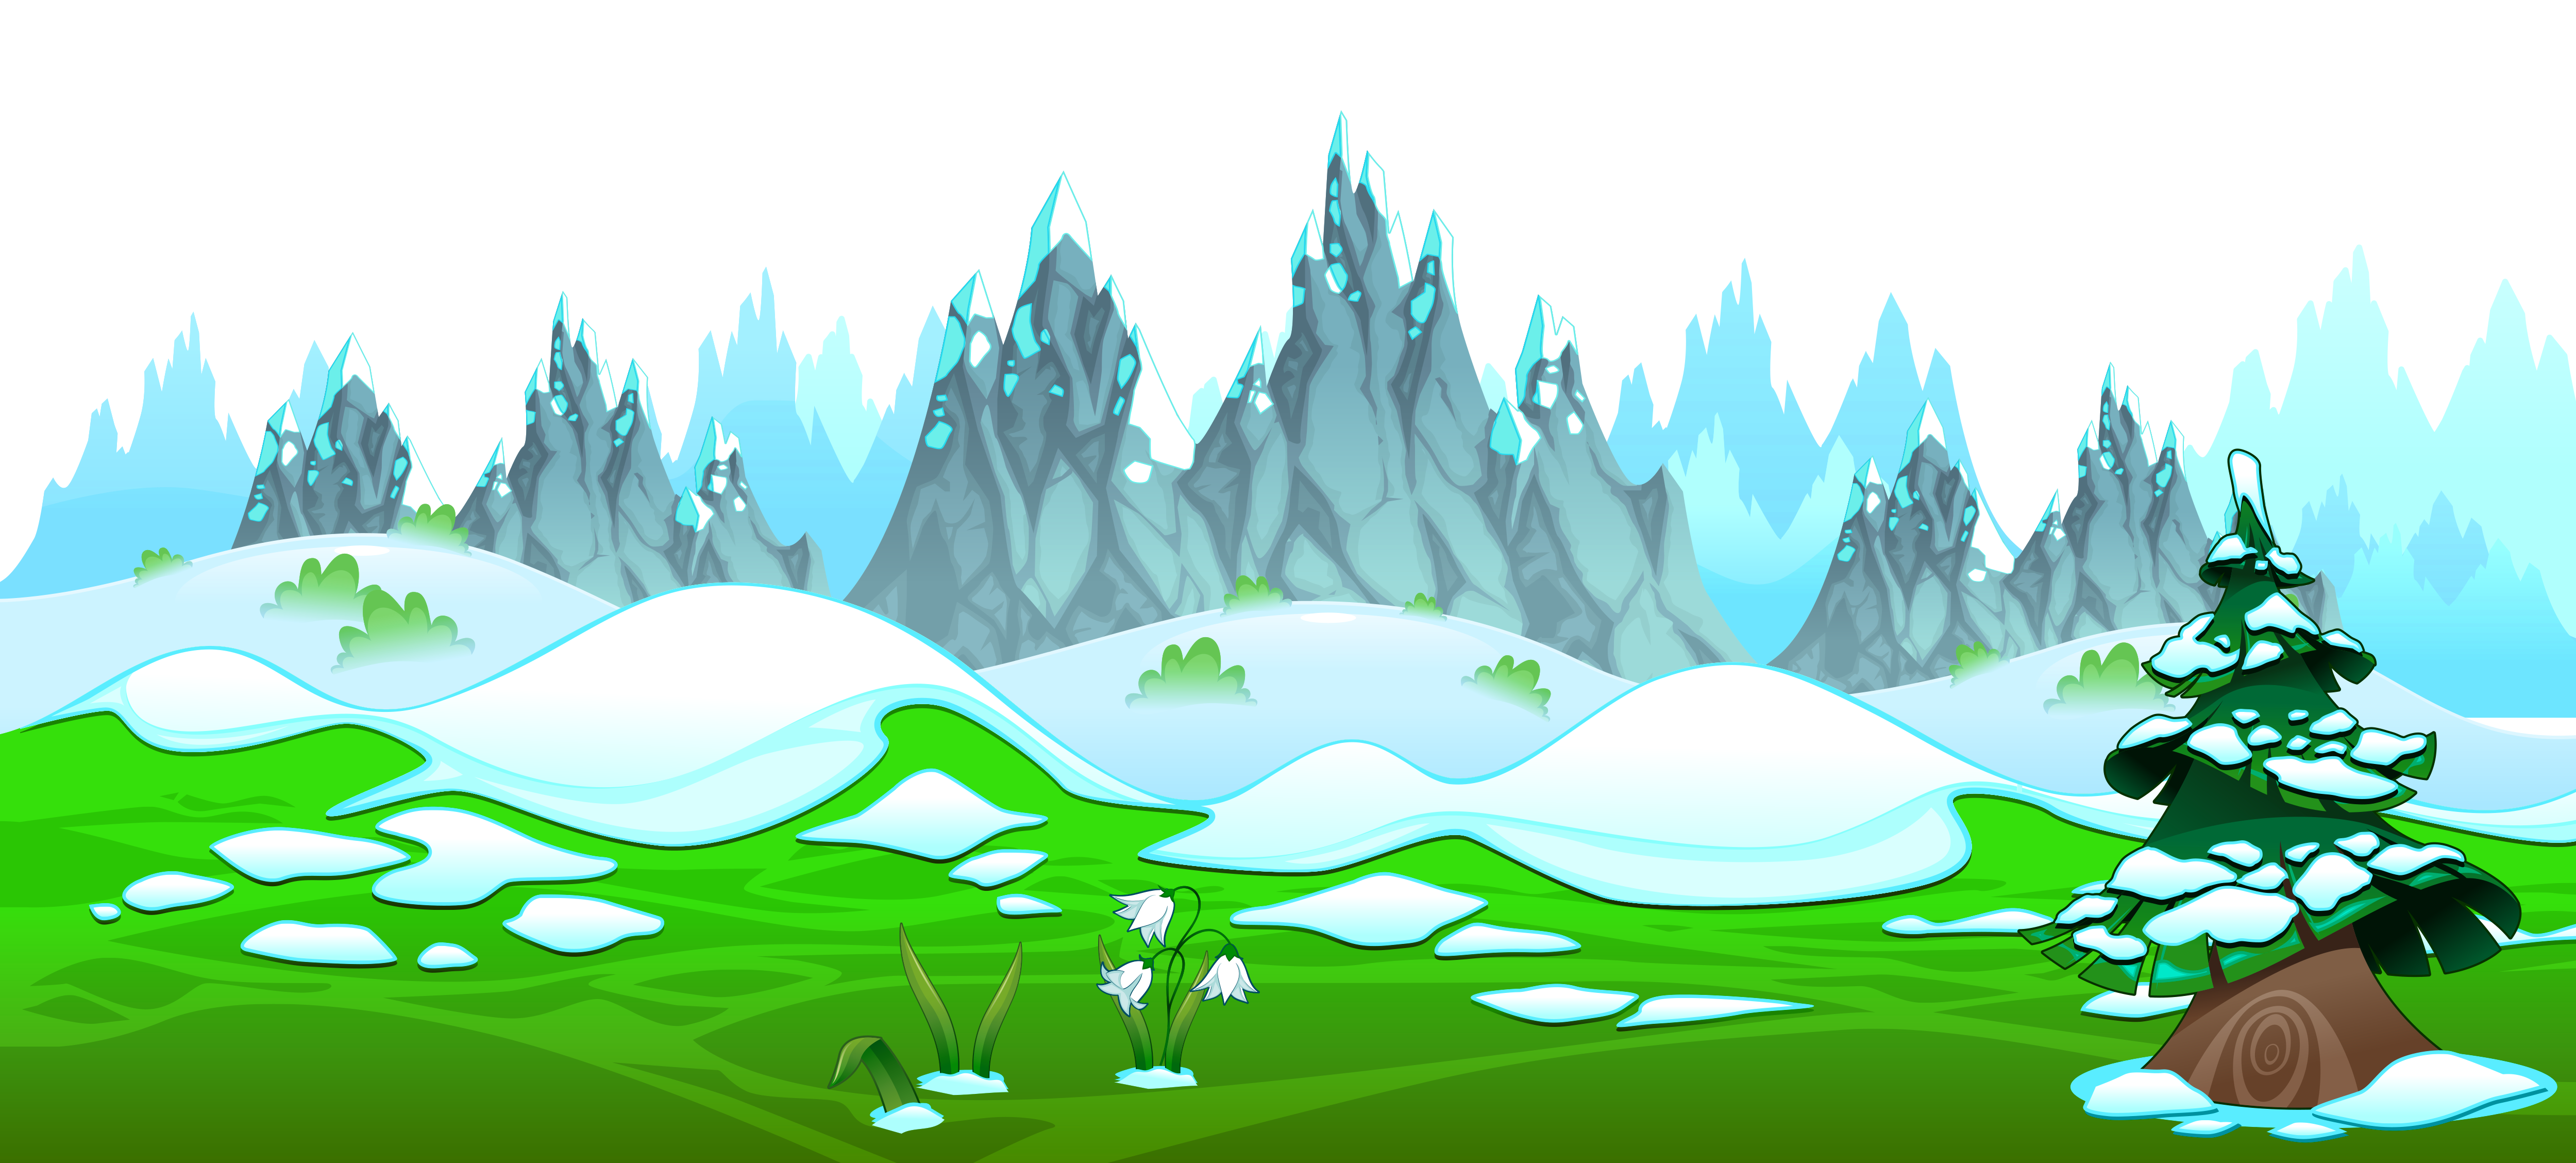 jpg Ground clipart moutains. Landscape hills free on